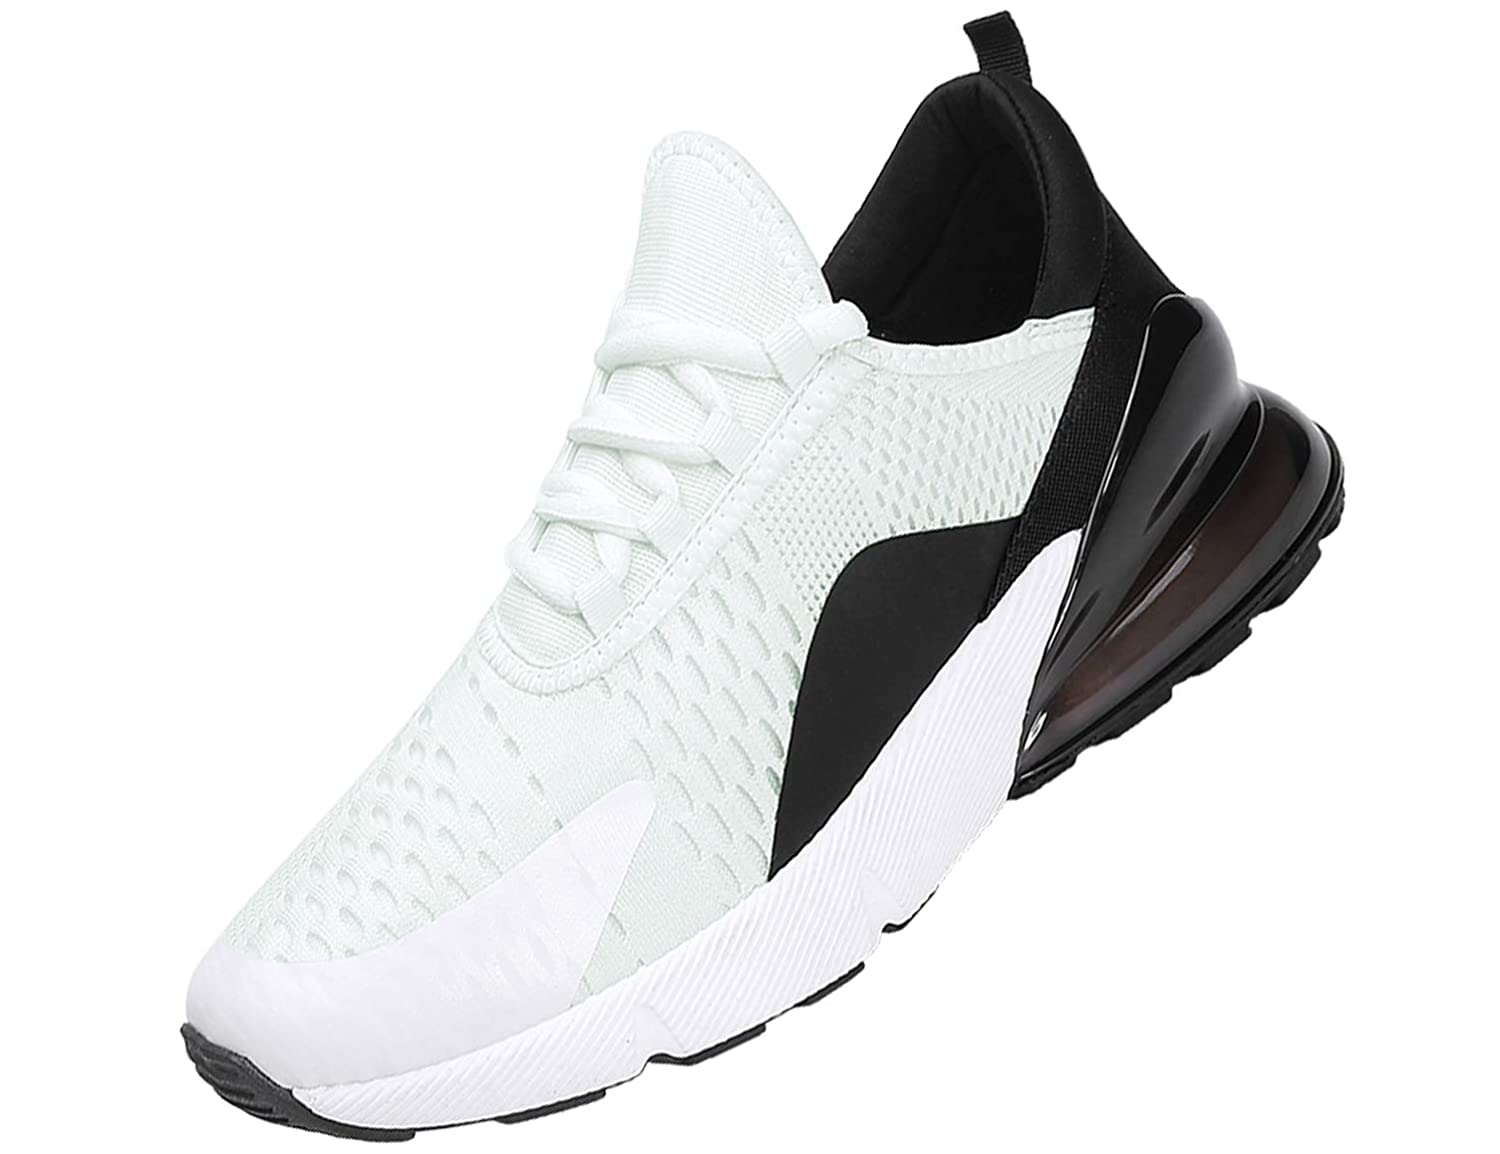 SINOES New Mens Womens Air Sports Running Shoes Shock Absorbing Trainer Running Jogging Trainers Unisex Gym Trainers Fitness Lightweight Shoes